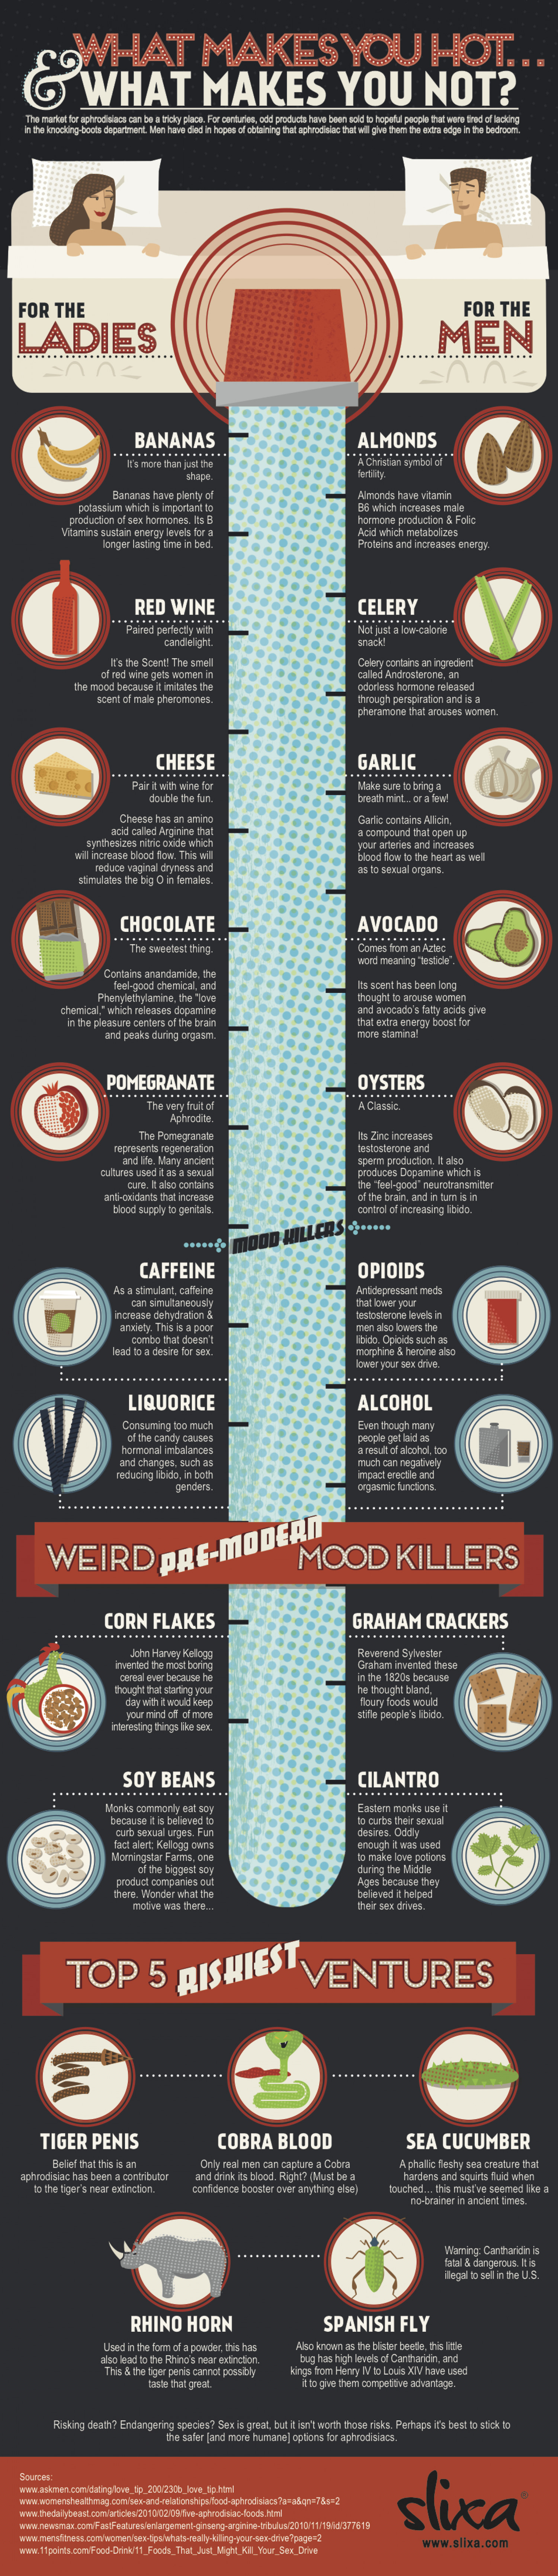 What Makes You Hot? Infographic